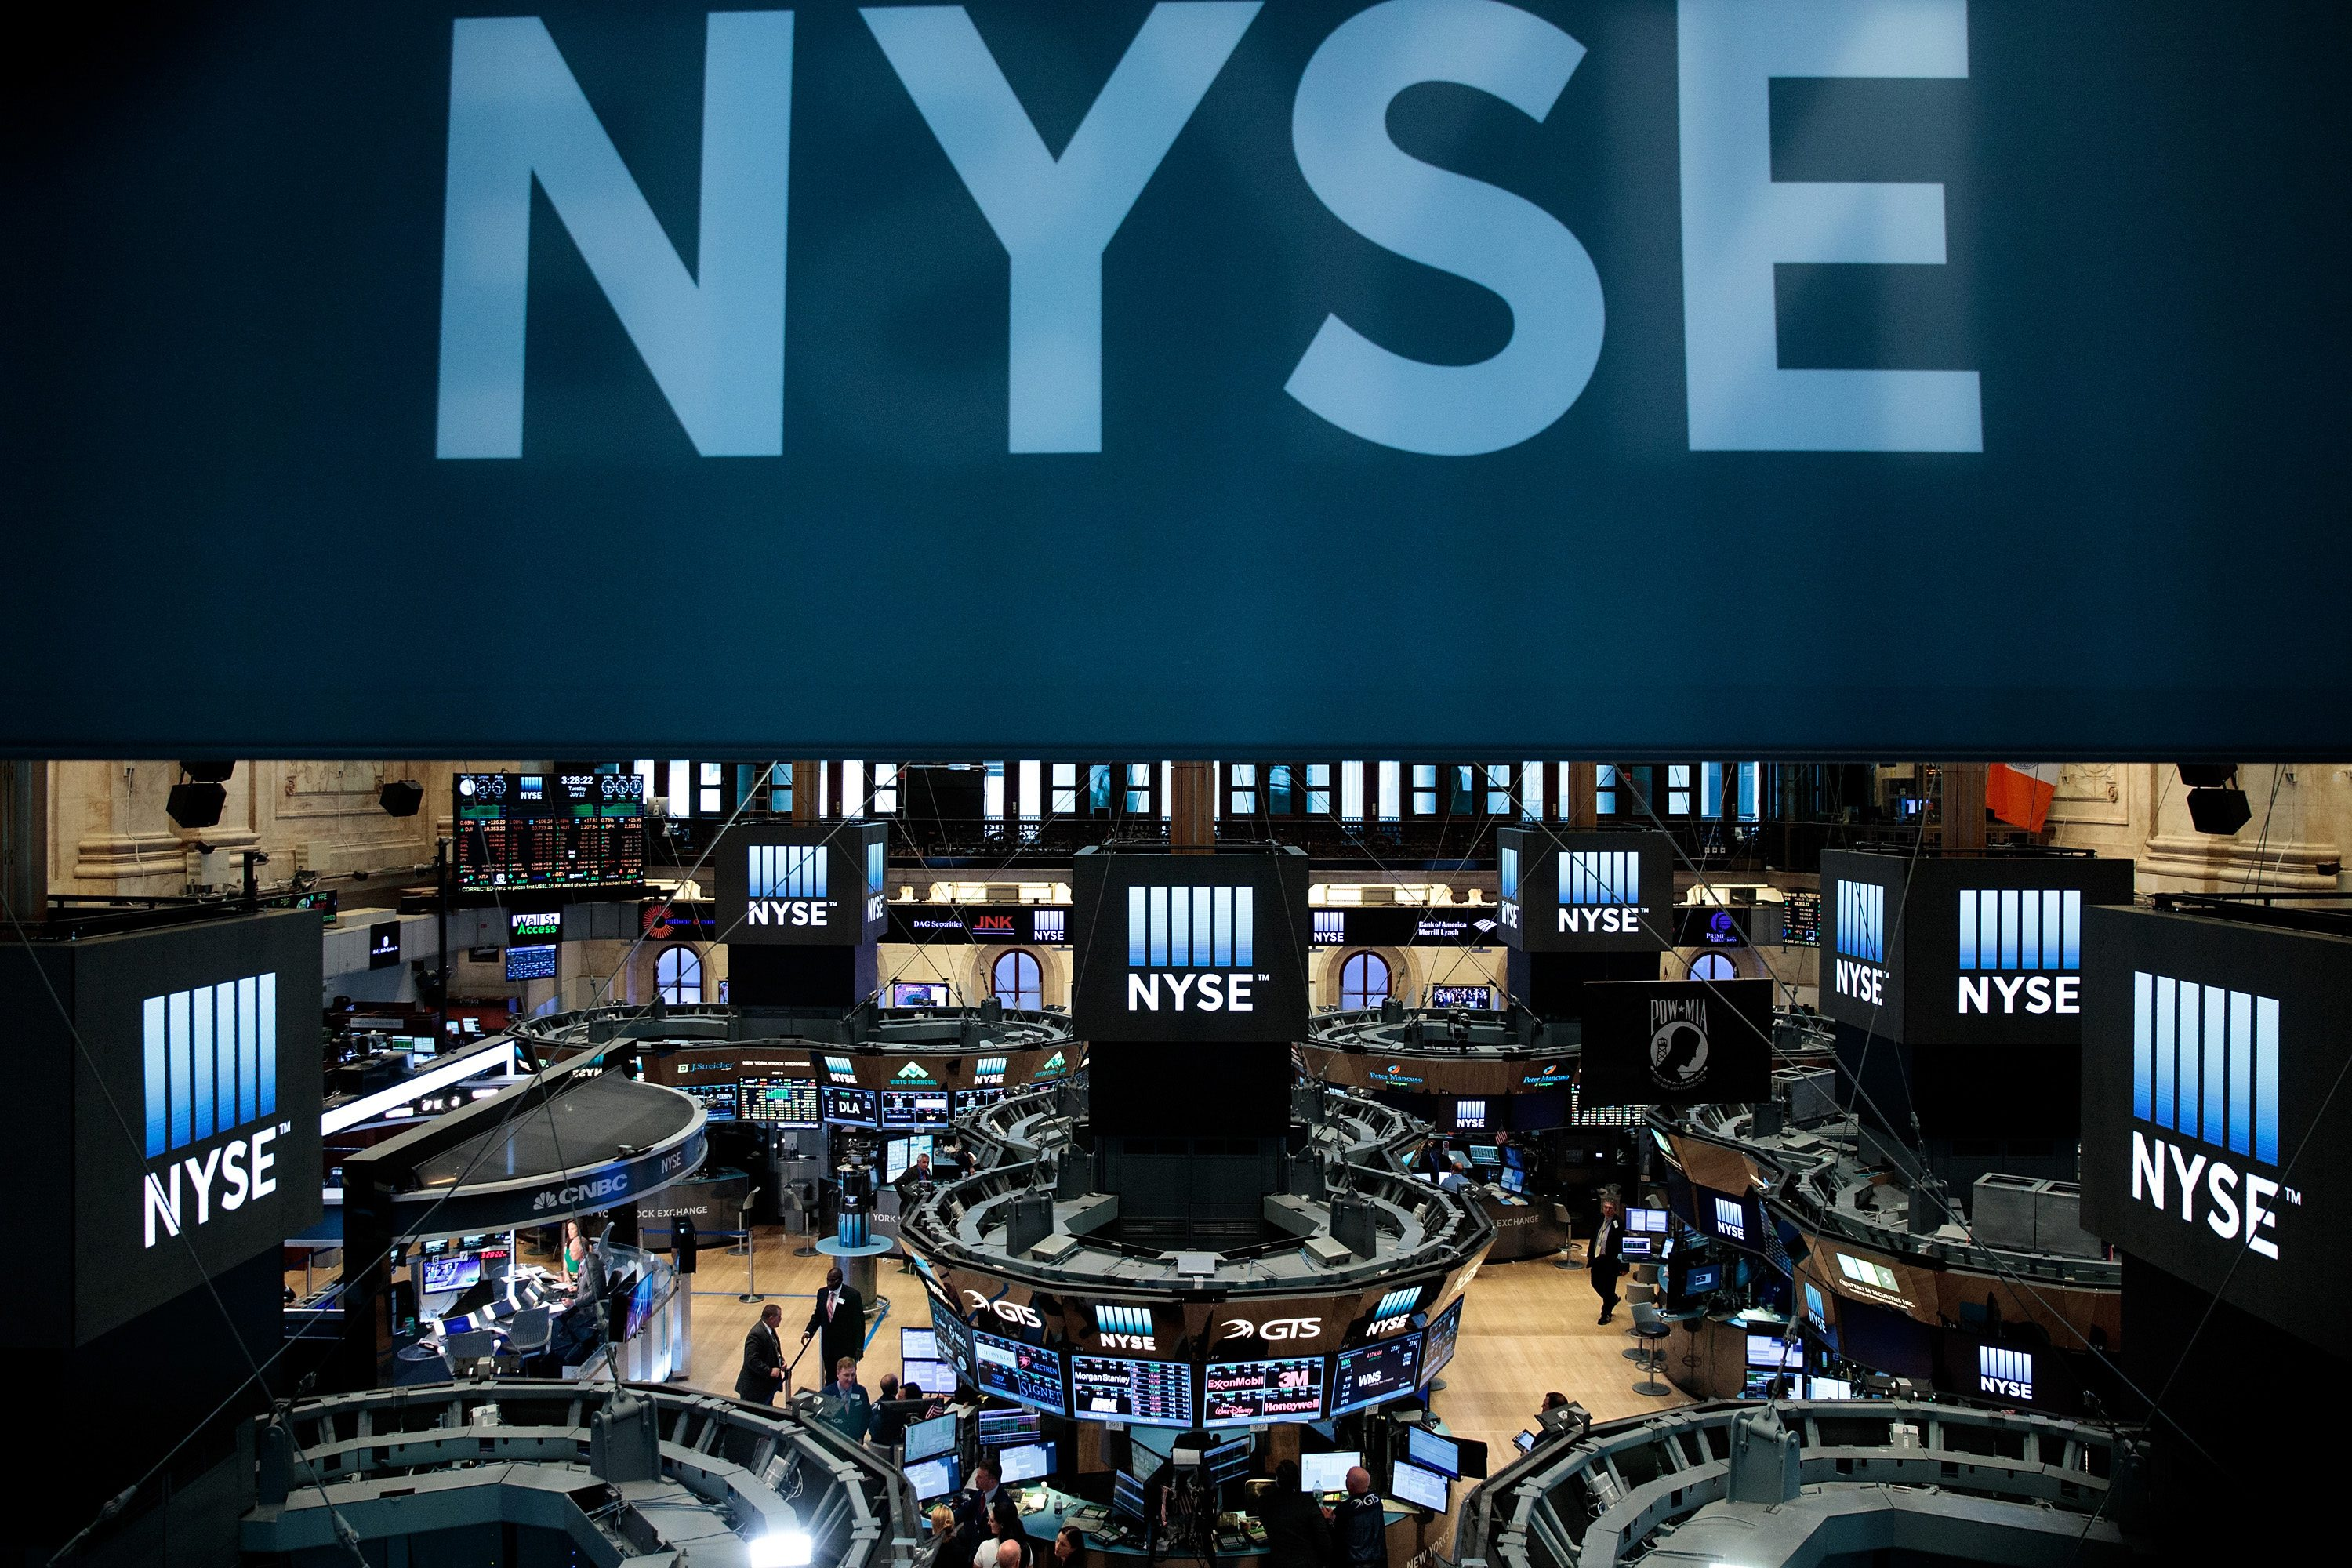 Traders and financial professionals work on the floor of the New York Stock Exchange. (Drew Angerer/Getty Images)